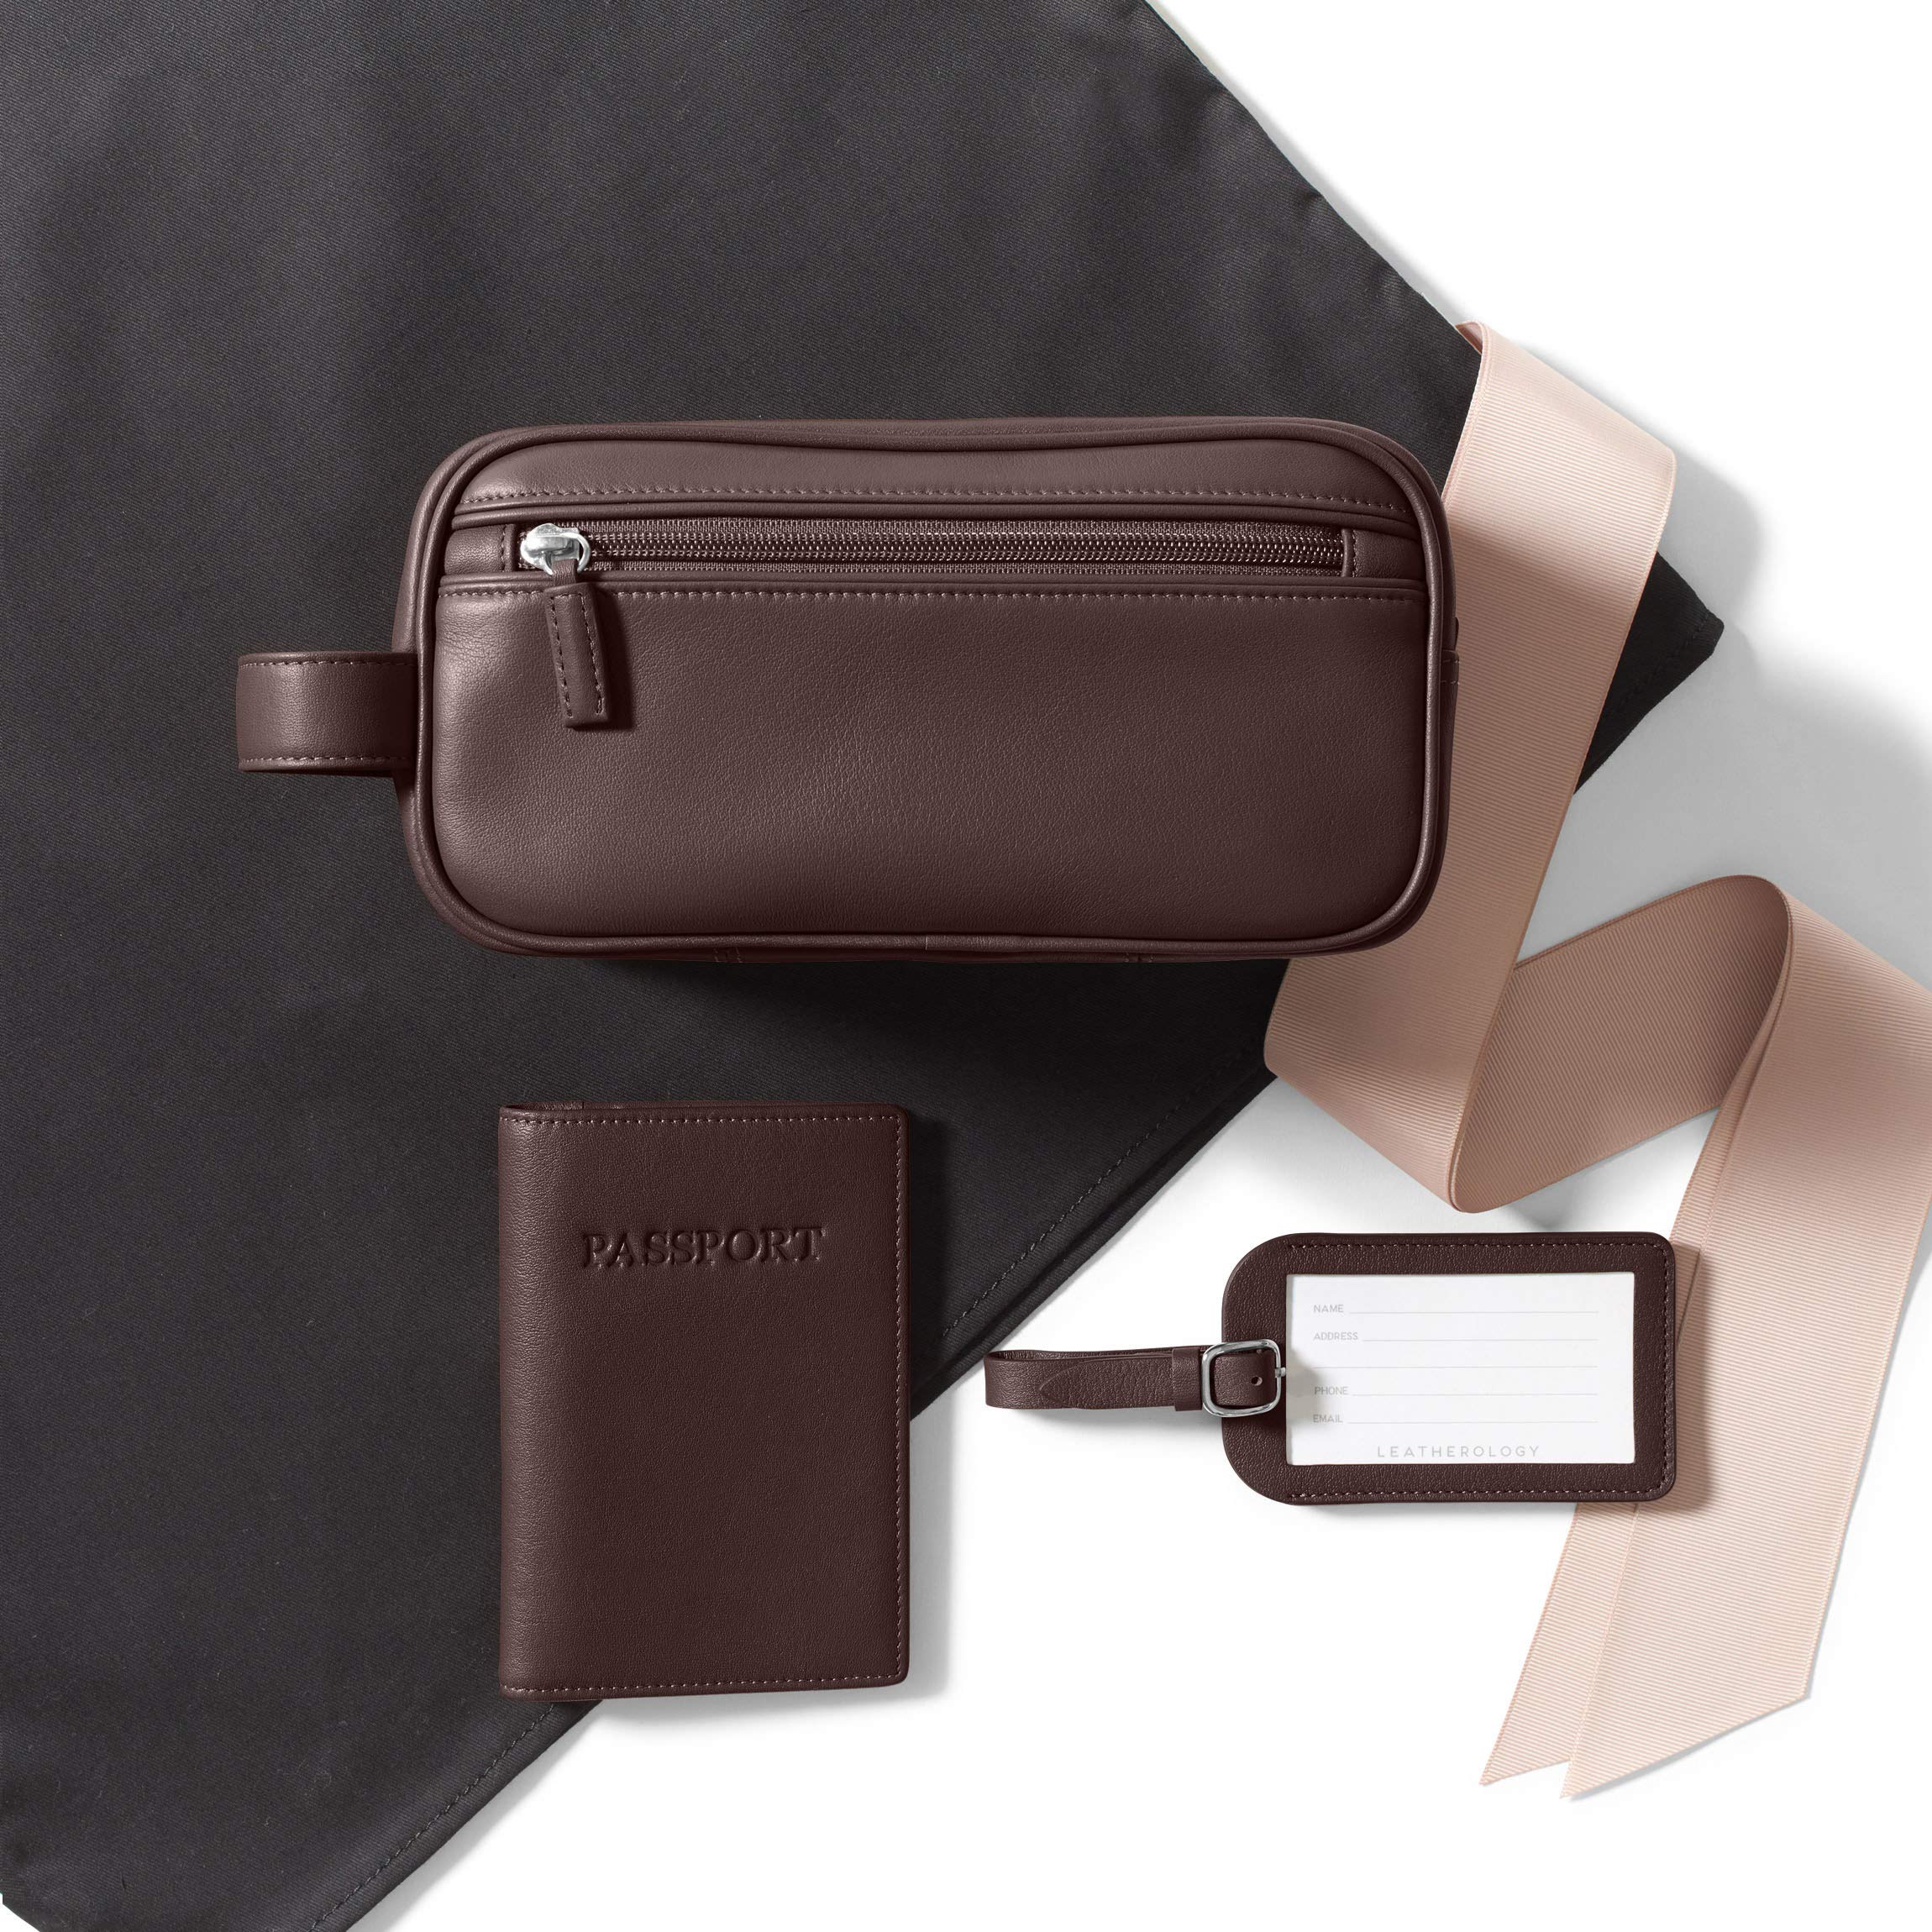 Leatherology Jetsetter Travel Gift Set for Him - Full Grain Leather Leather - Brown (Brown)